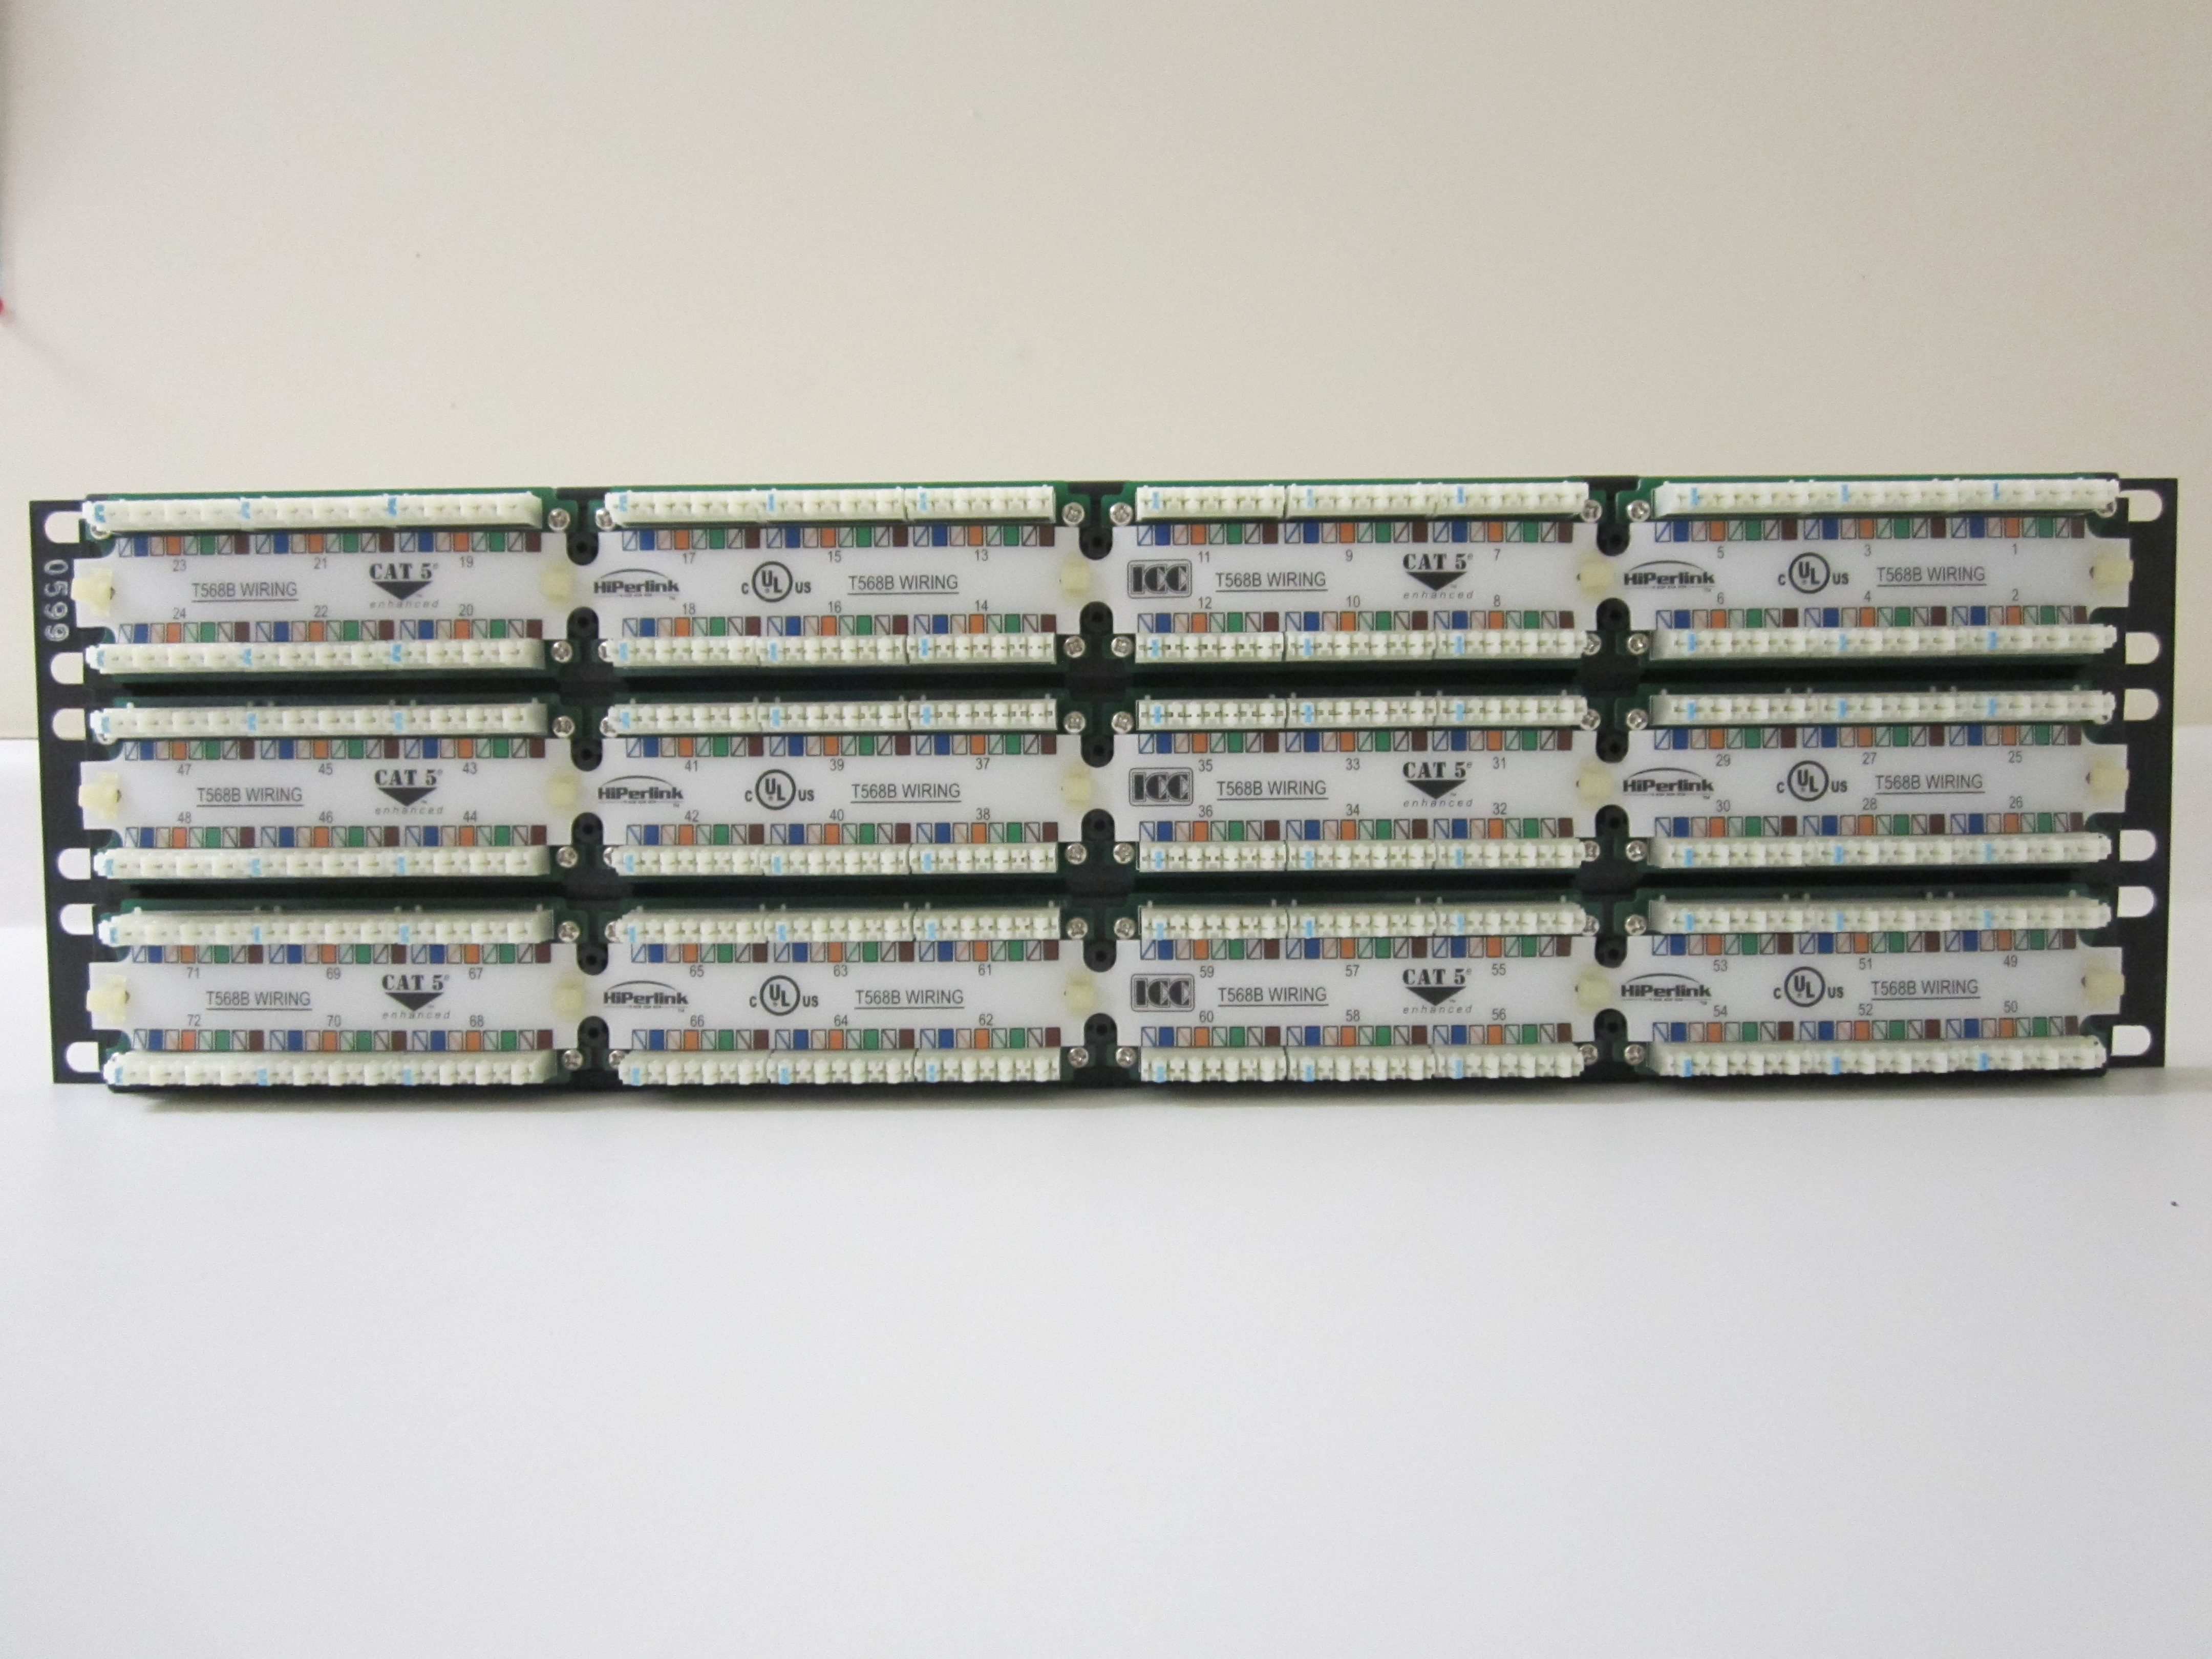 72 Port Cat 5e Patch Panel 24 6 Cable Wiring 48 Quick View